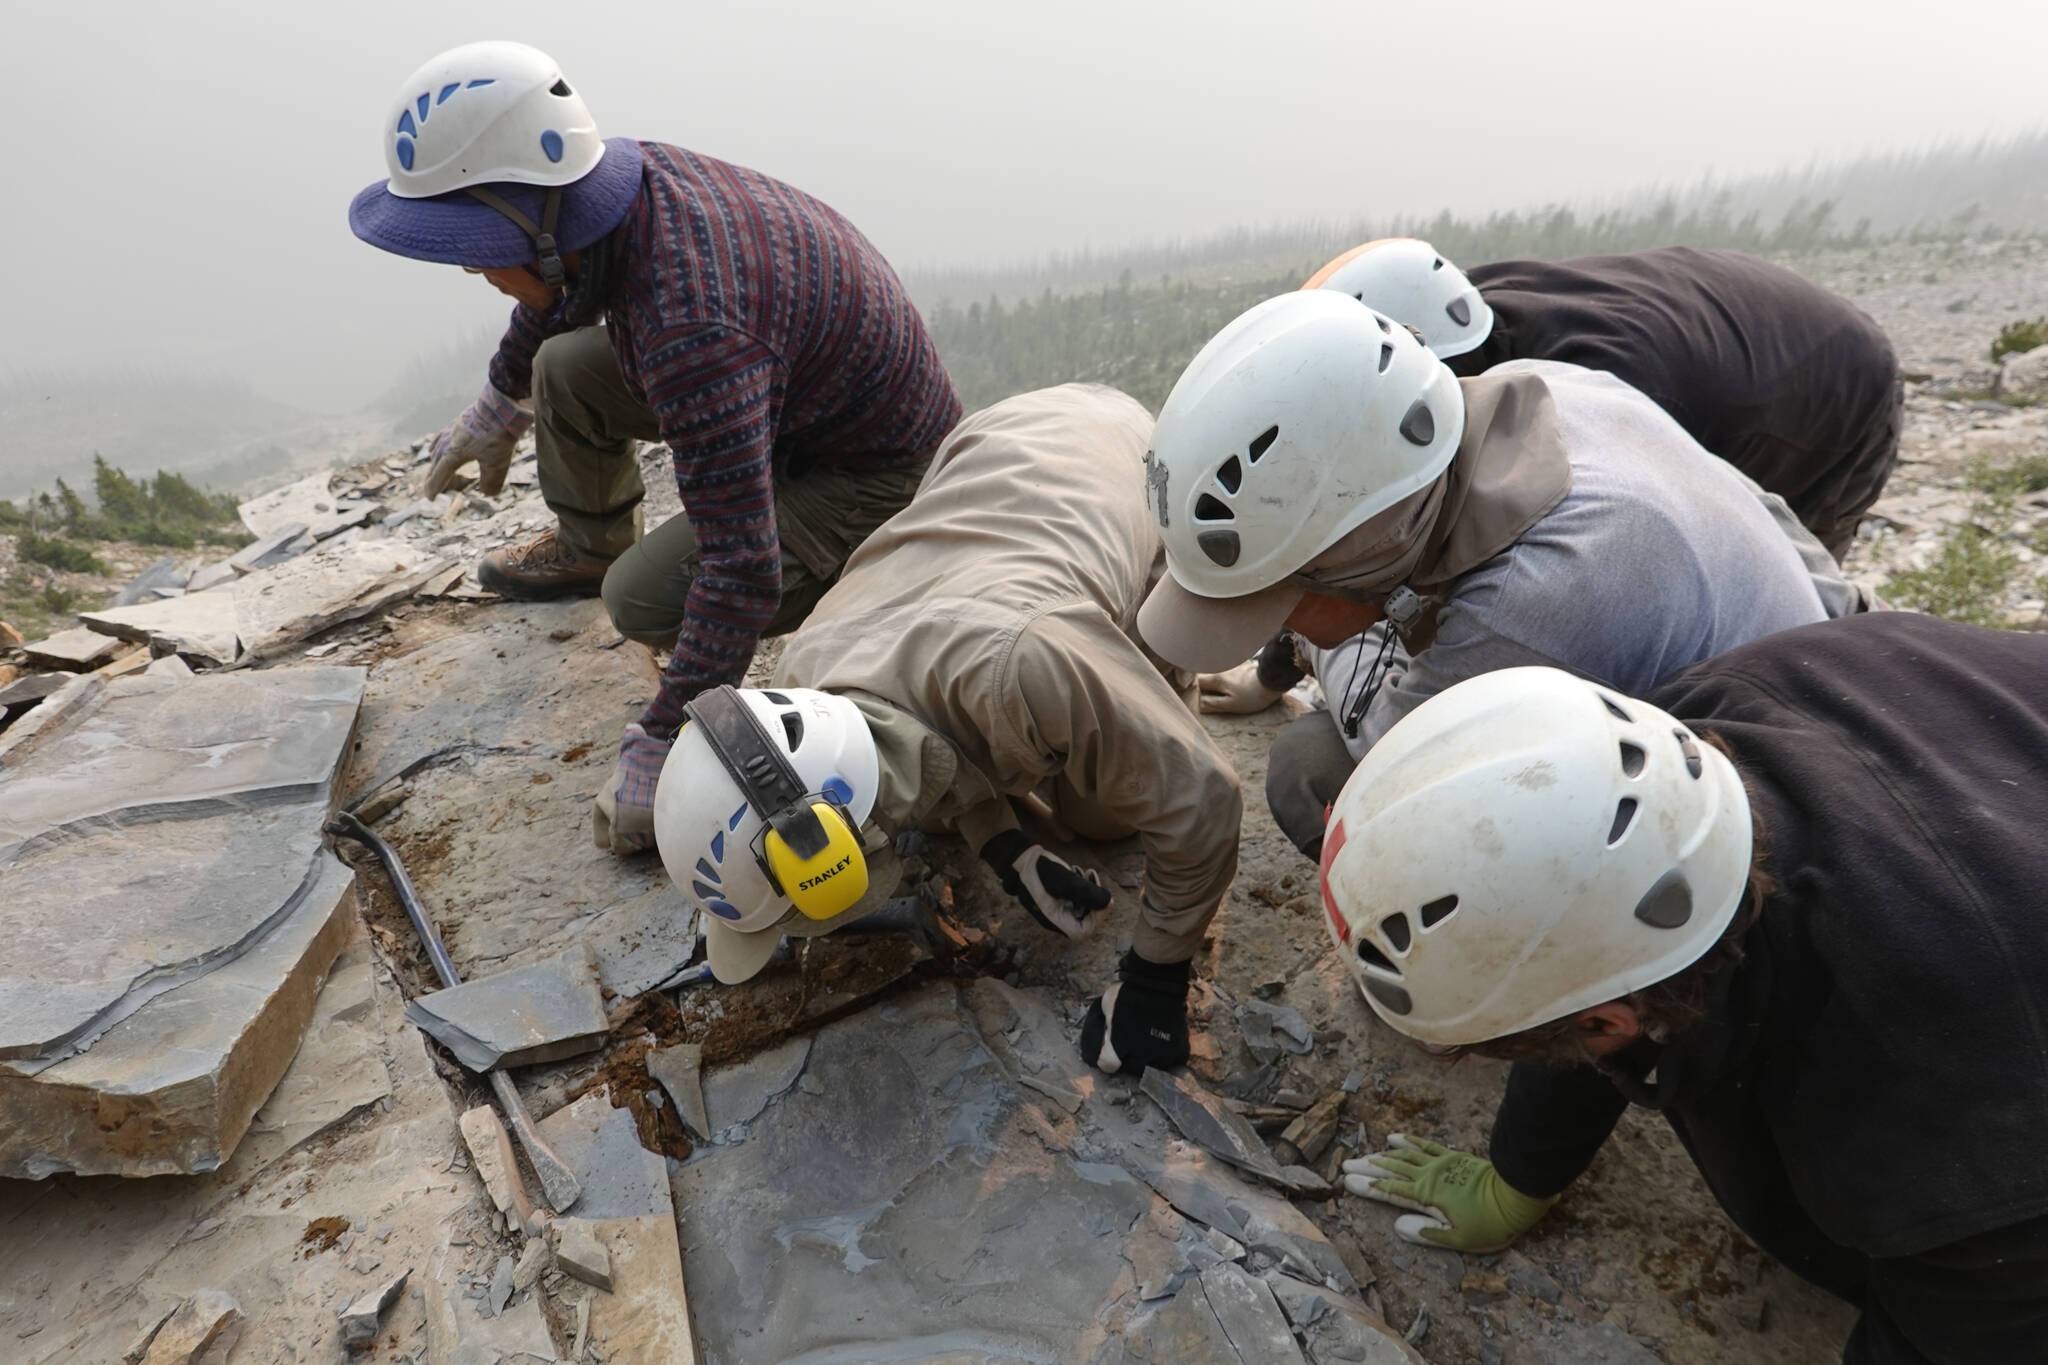 A Royal Ontario Museum fieldwork crew are seen extracting a shale slab containing a fossil of Titanokorys gainesi in the mountains of Kootenay National Park, B.C., in an undated handout photo. (THE CANADIAN PRESS/HO-ROM, Jean-Bernard Caron photo)